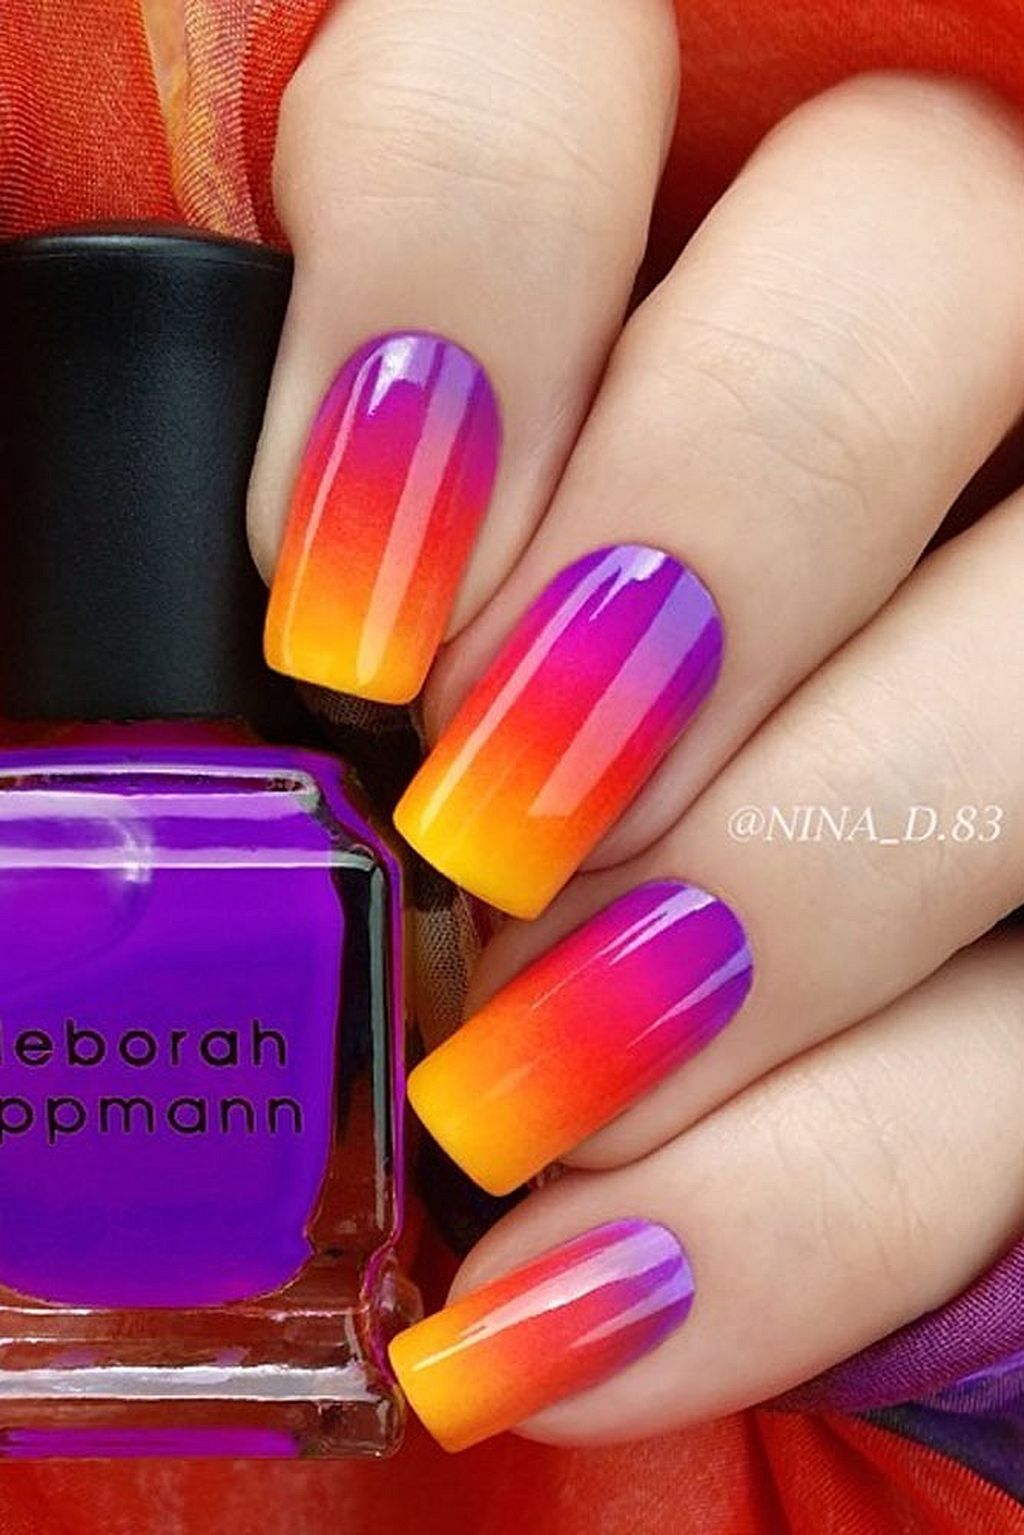 awesome 90+ Best Ideas About Ombre Nails Art Design | "|1024|1535|?|en|2|36199f7950bc4aaf357fd448d49c49c6|False|UNLIKELY|0.30235186219215393